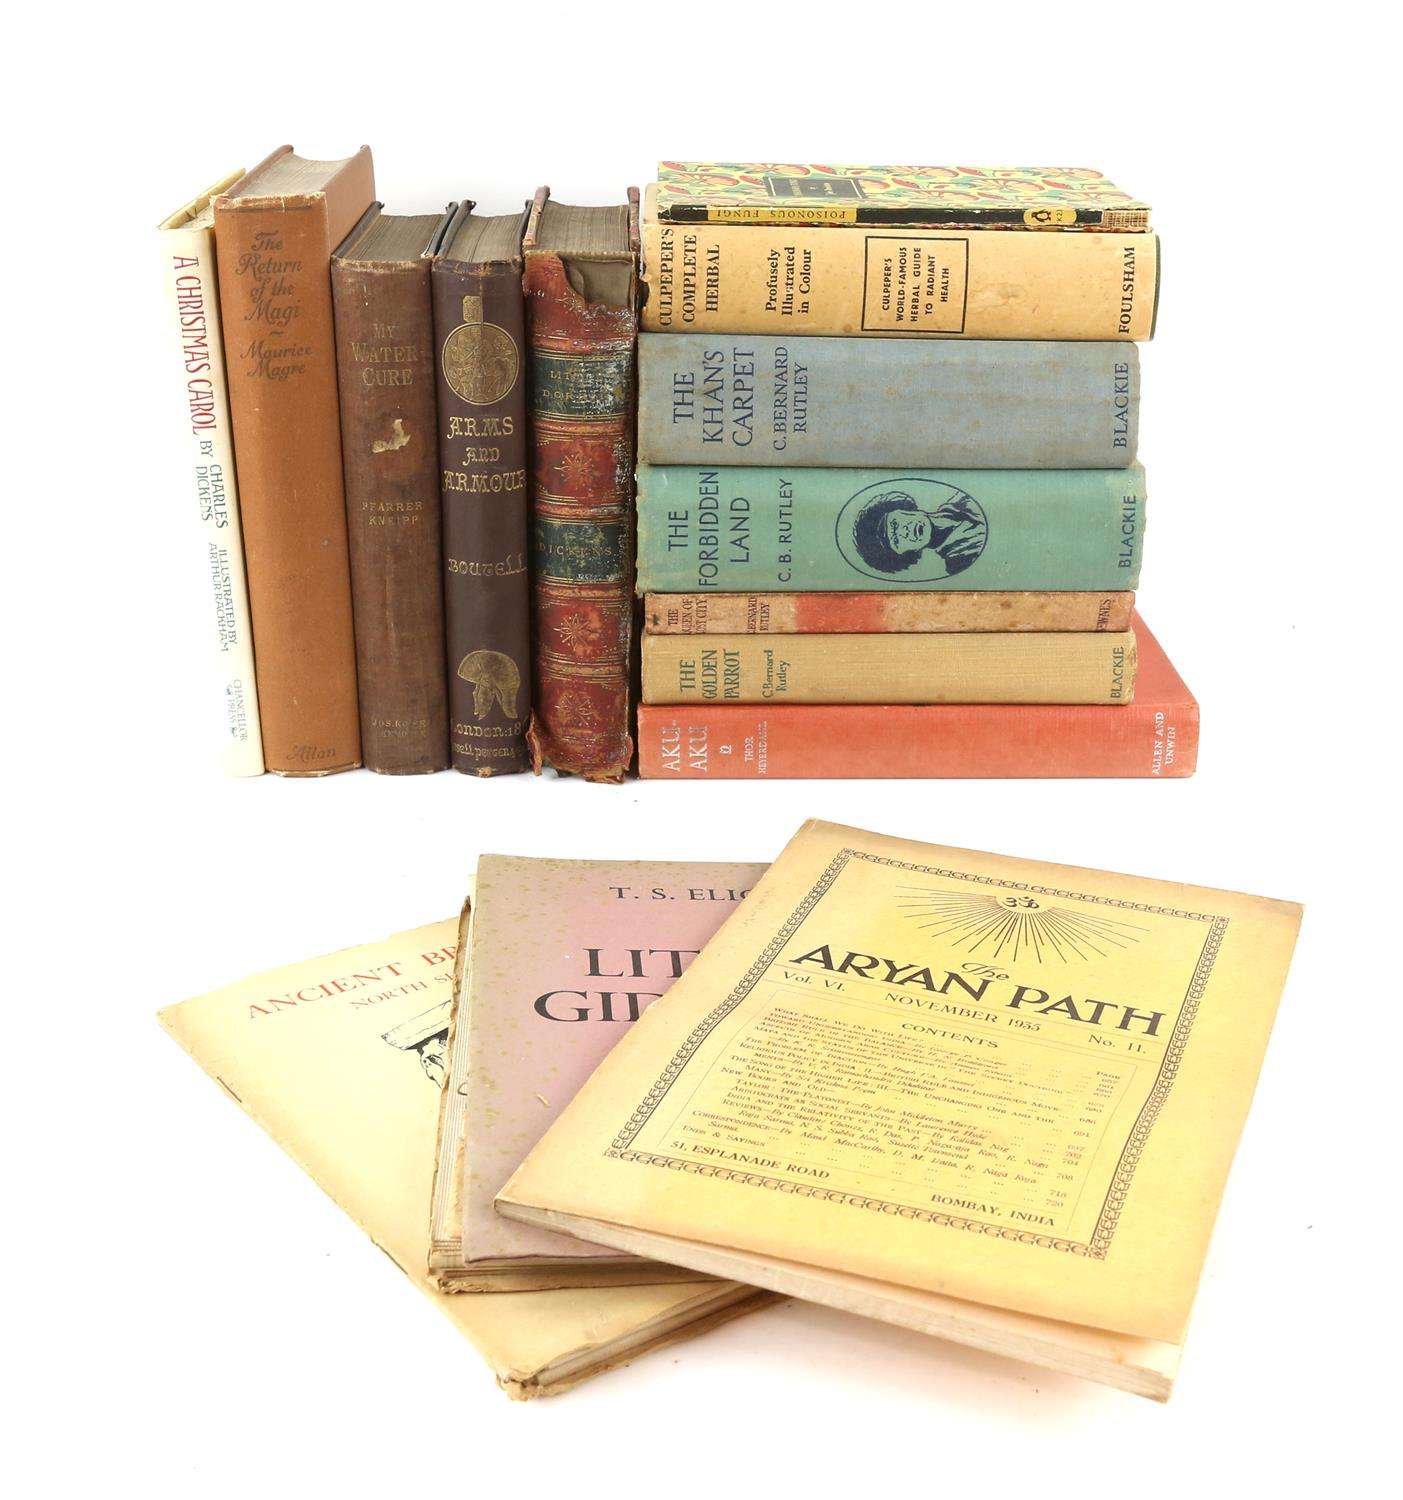 Various books including Chilton's Mustang, 1965-1968 with several other related books,